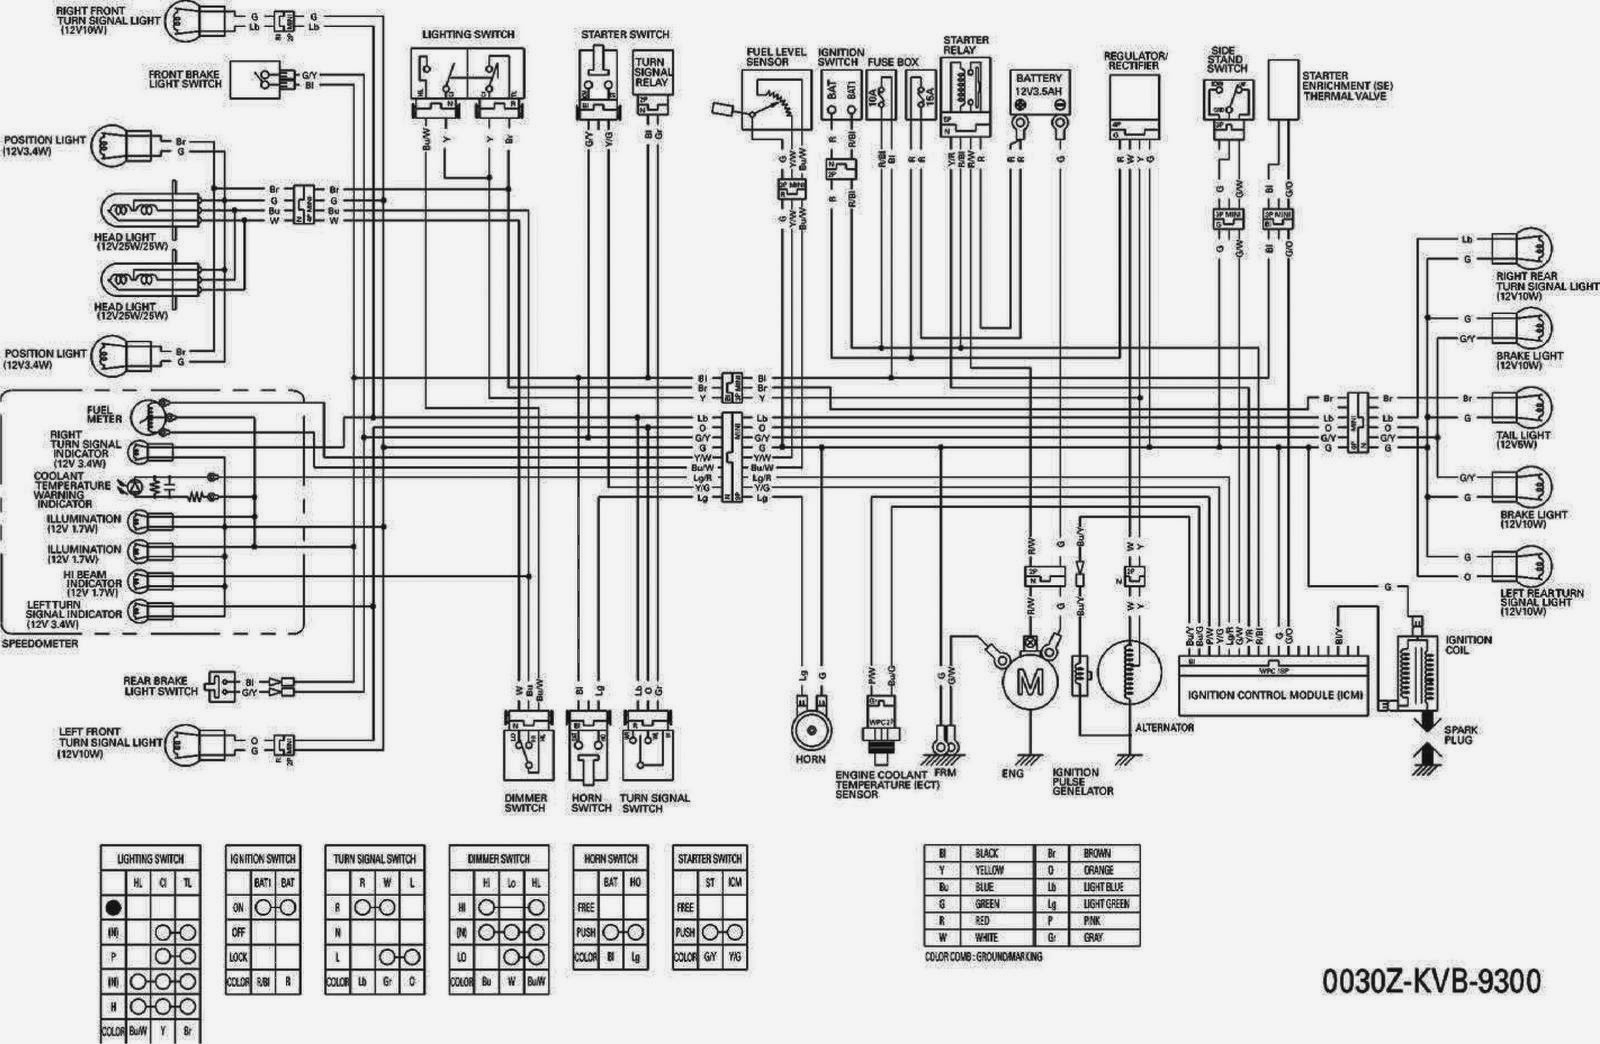 Wiring Diagram Yamaha New Vixion $ Download-app.co